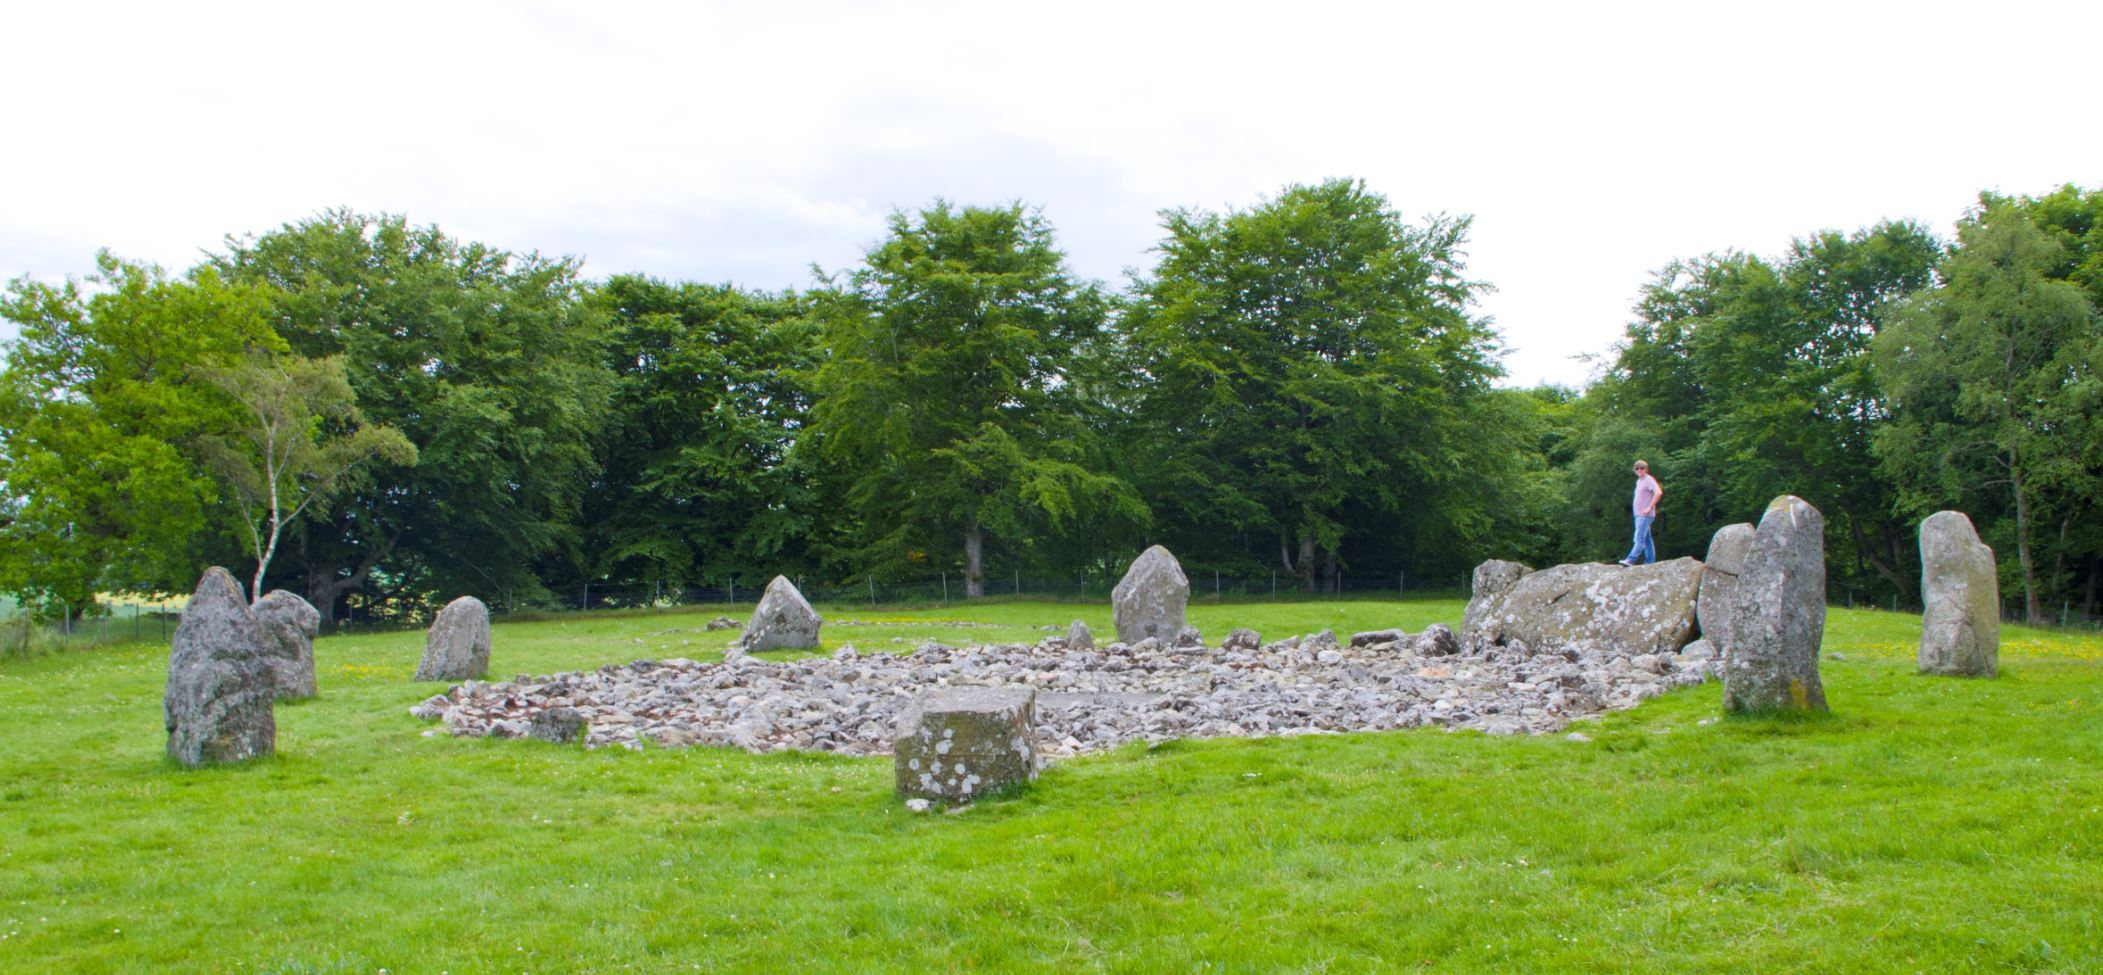 Loanhead of Daviot recumbent stone circle